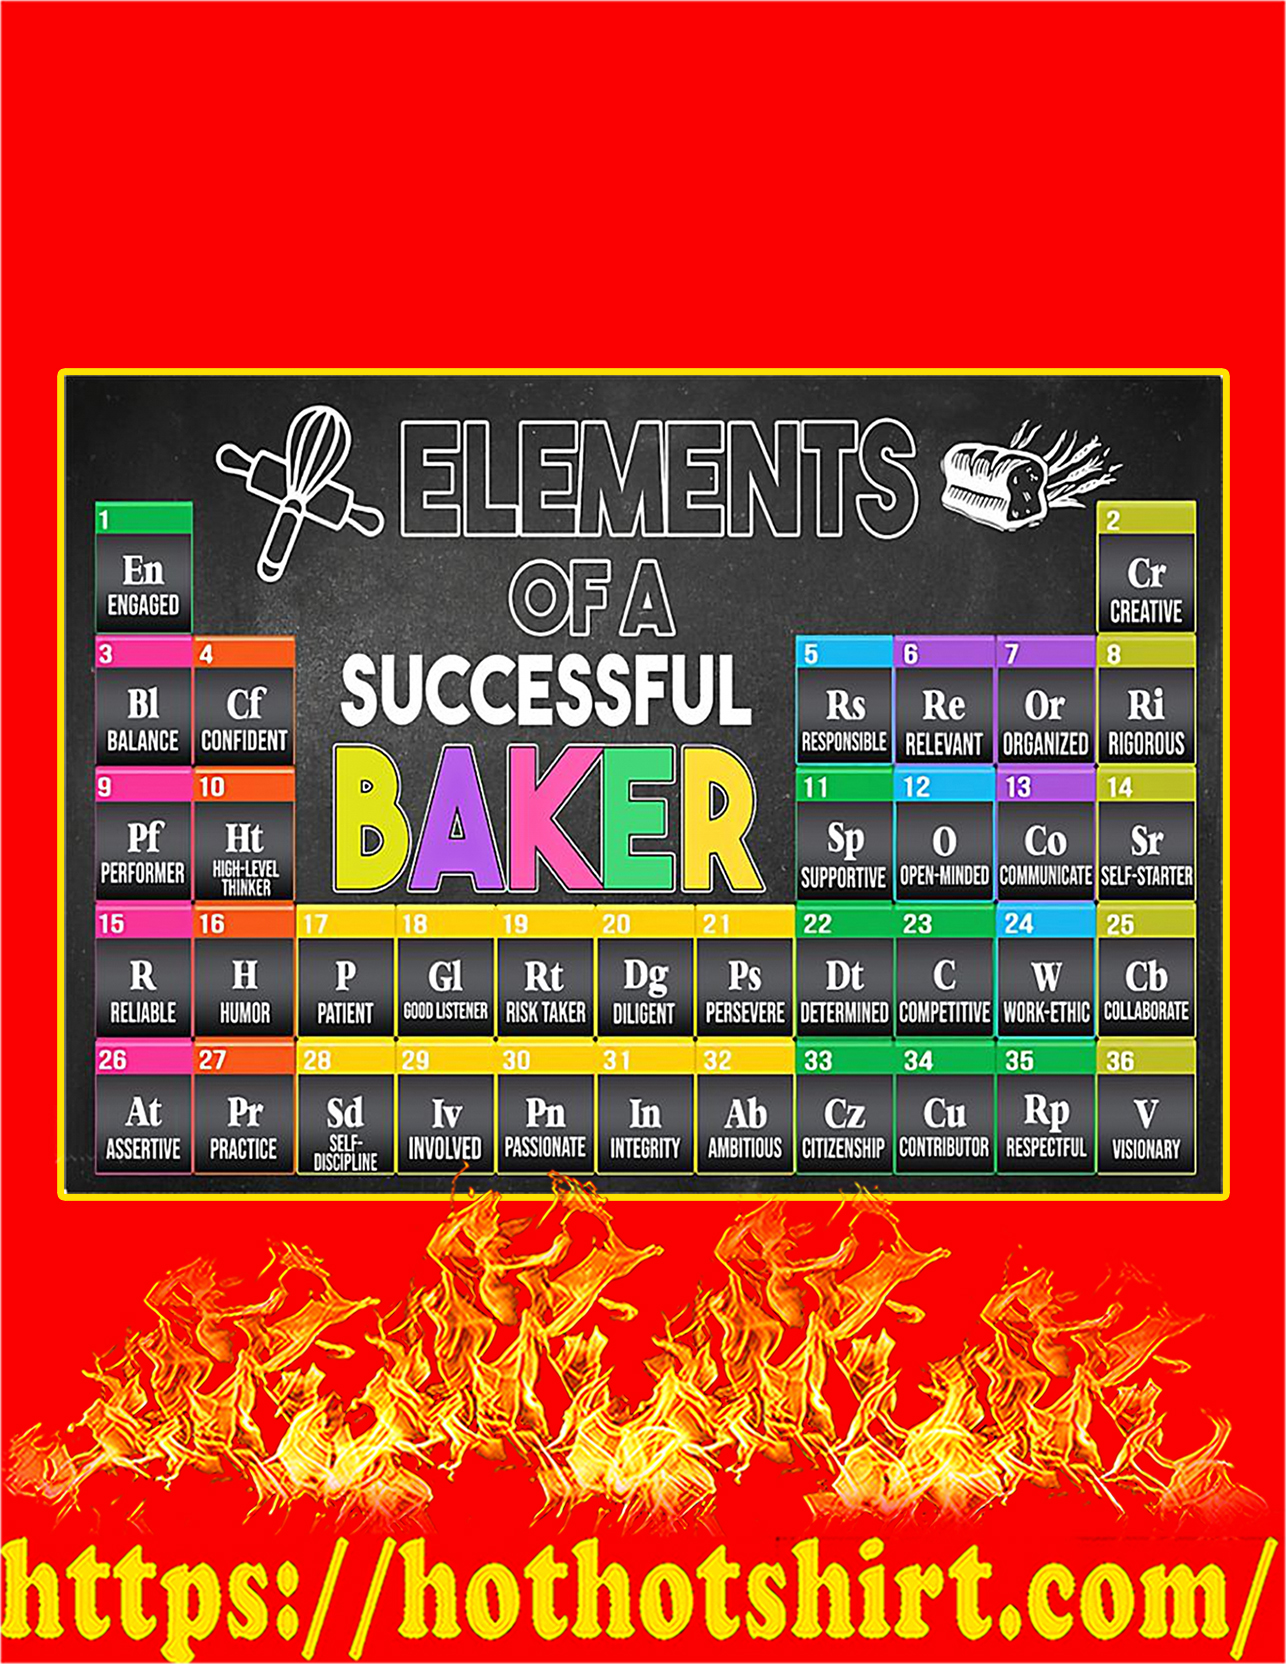 Elements of a successful baker poster - A3